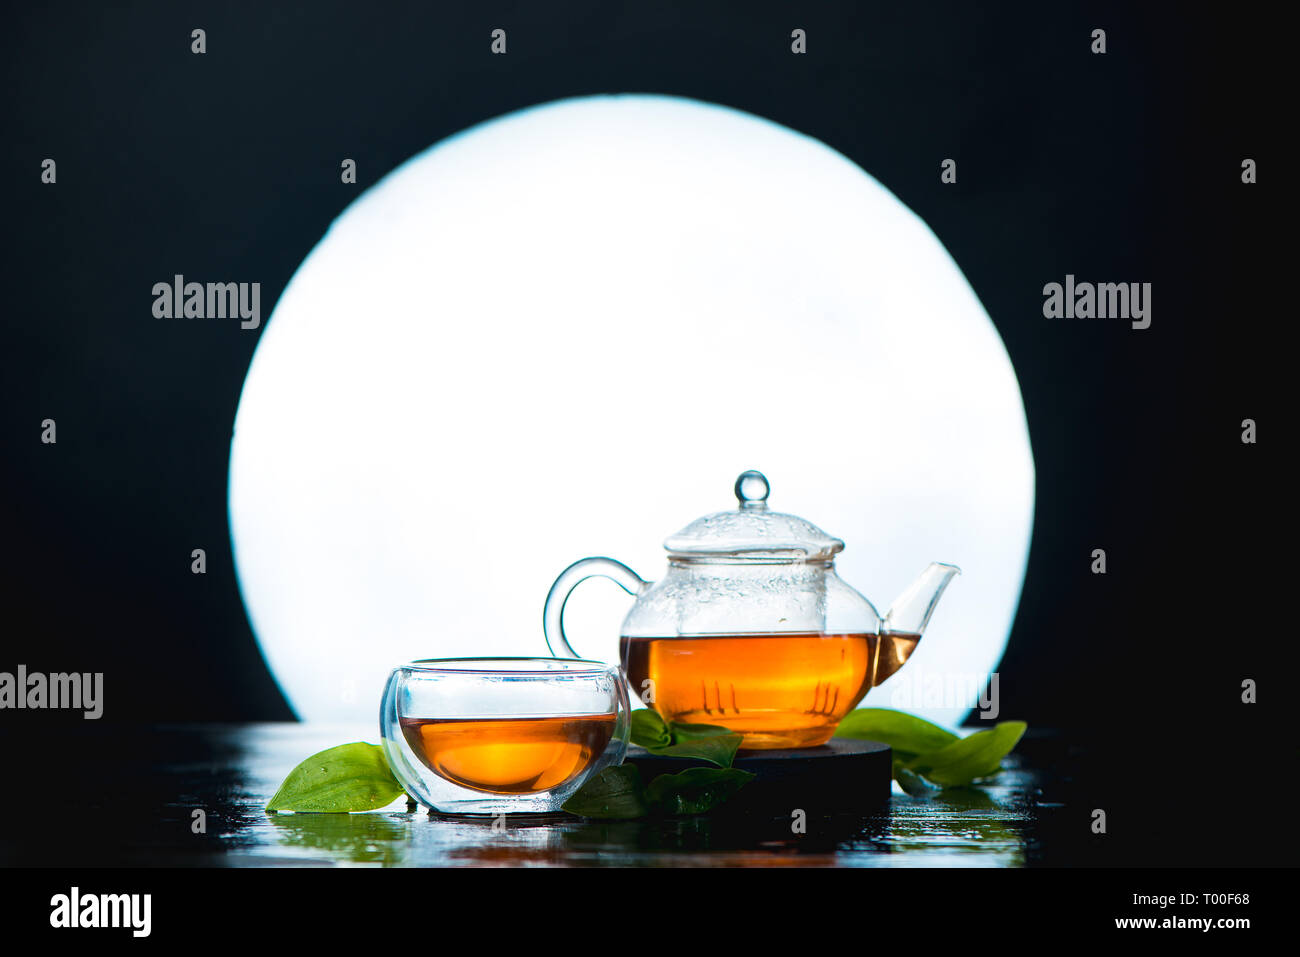 Asian tea ceremony still life header with a full moon. Glass tea bowl and teapot against a shining circle. Stock Photo